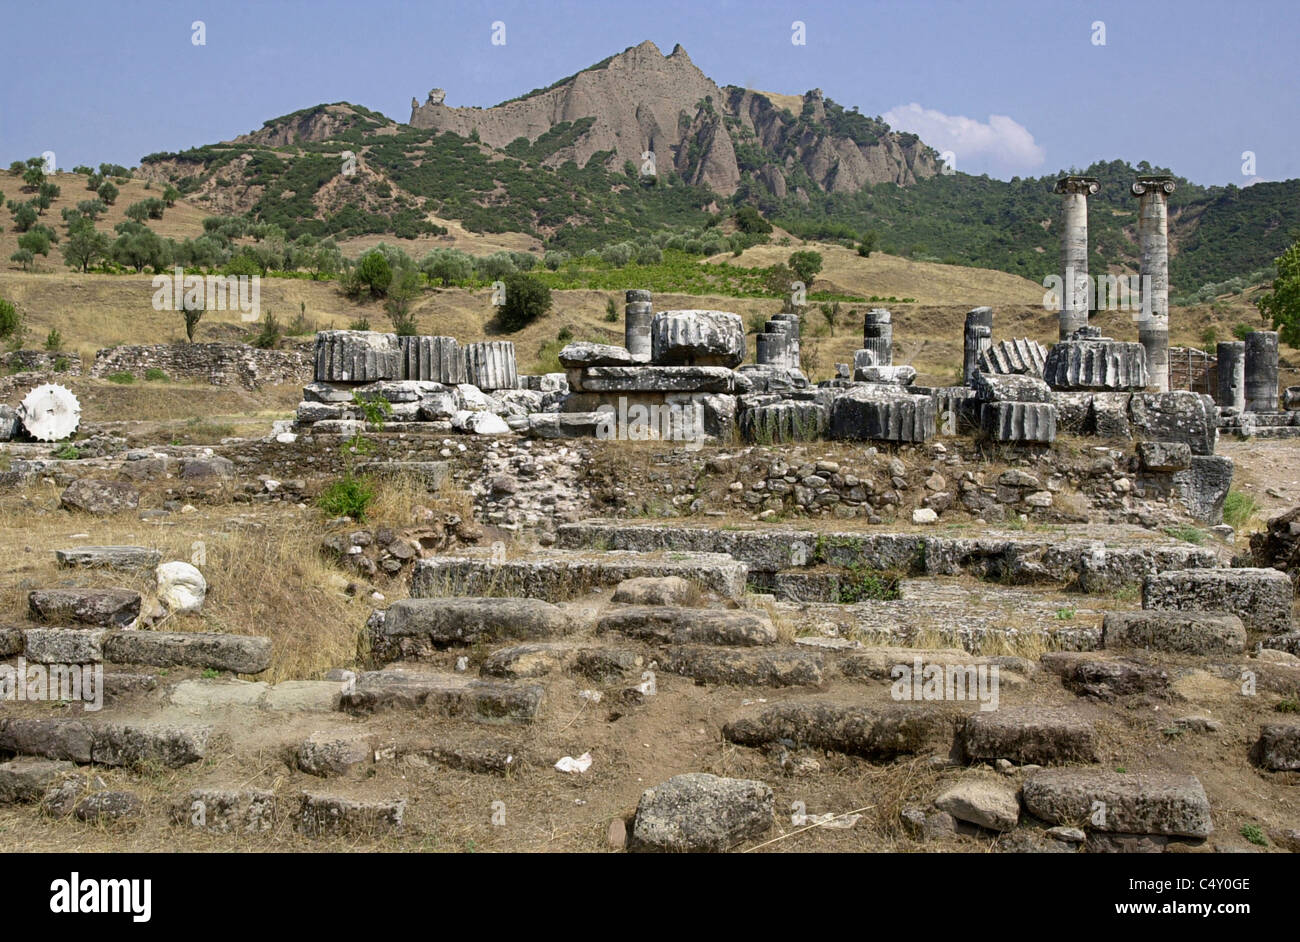 Archaic altar in from of the Temple of Artemis, Sardis, Turkey 010803_029 - Stock Image